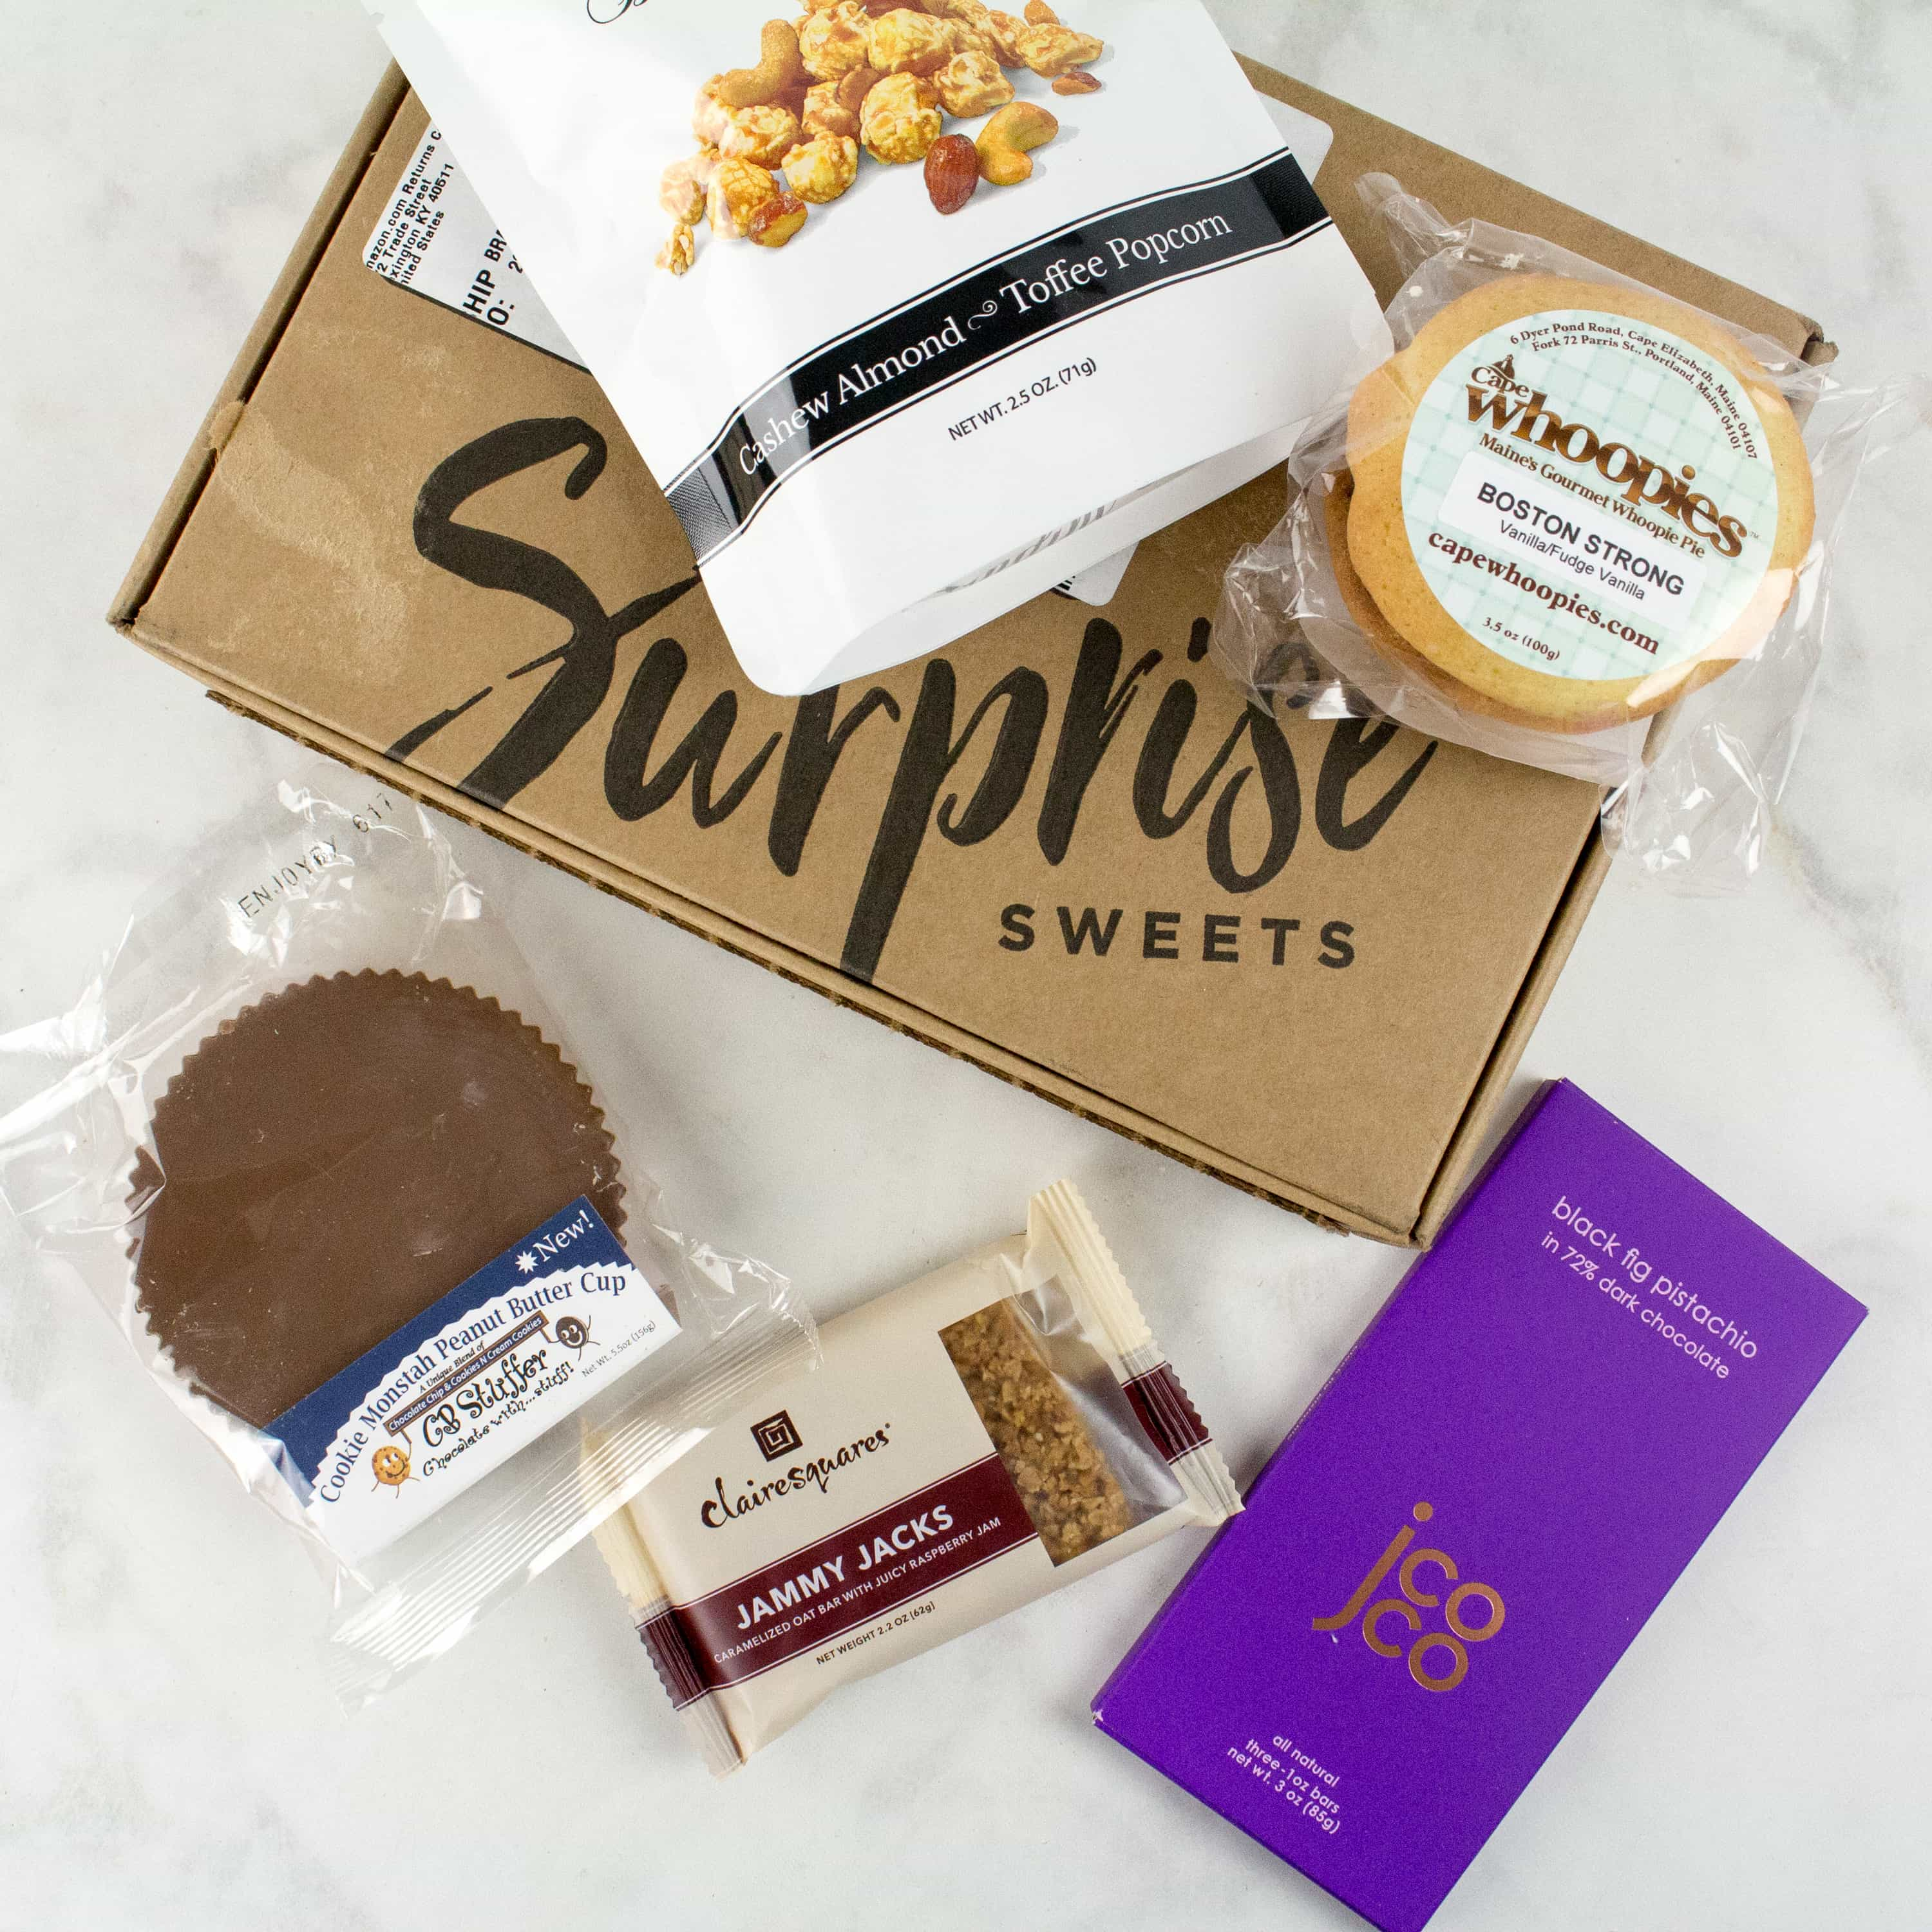 Amazon Prime Surprise Sweets Box March 2017 Review